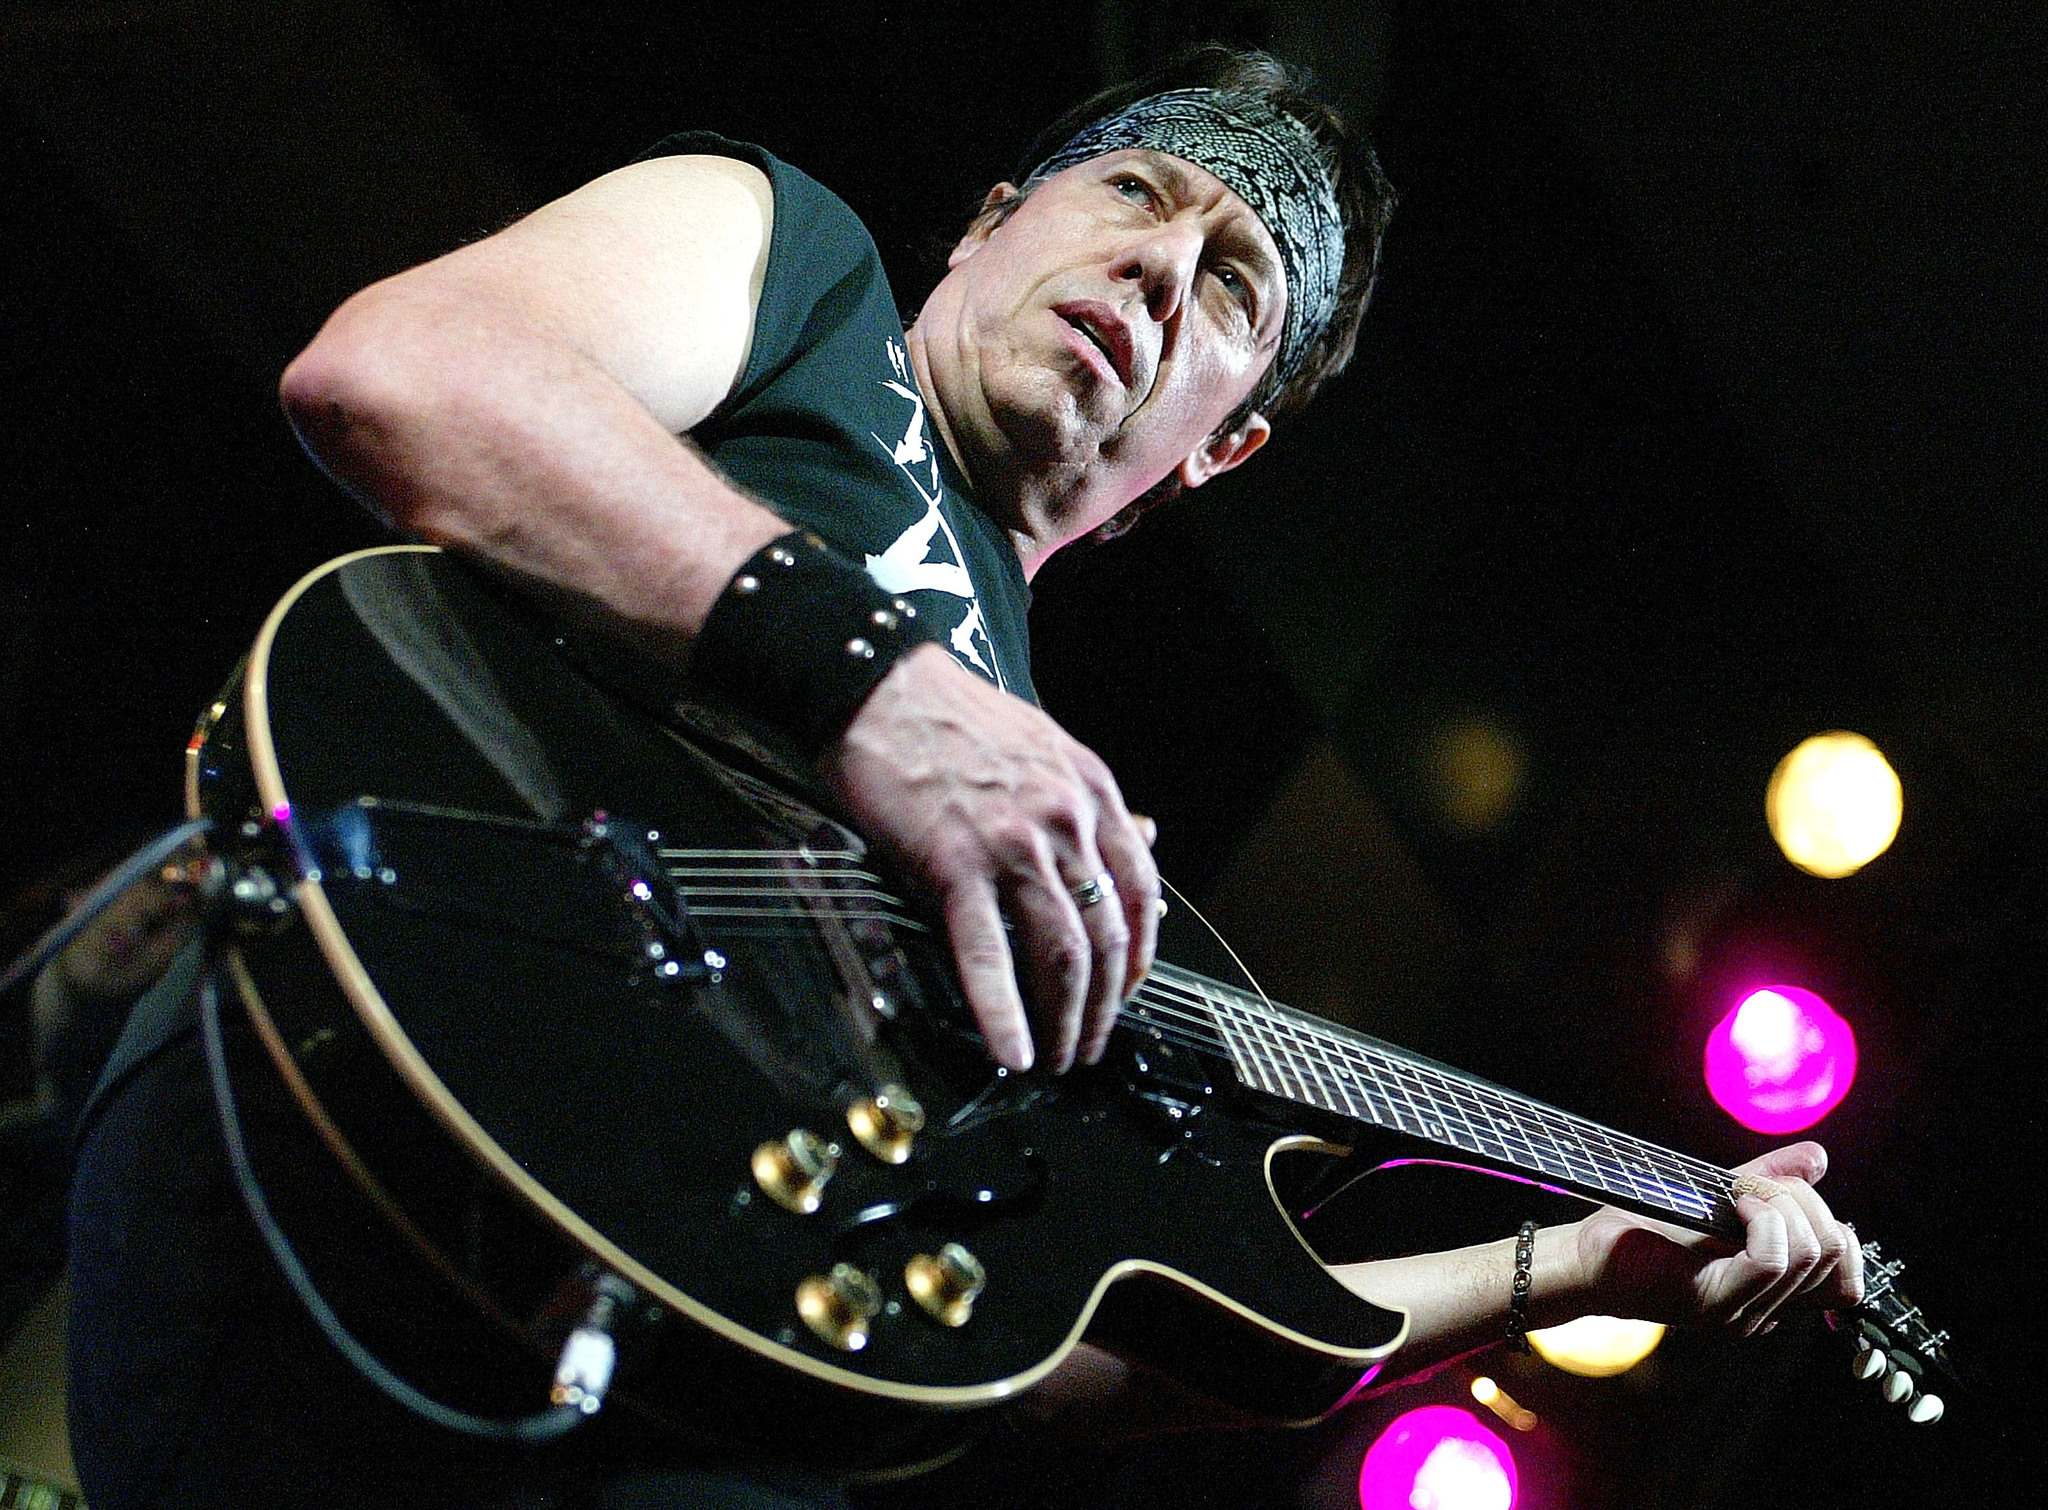 Bluesman George Thorogood Returns To The Burt Winnipeg Free Press